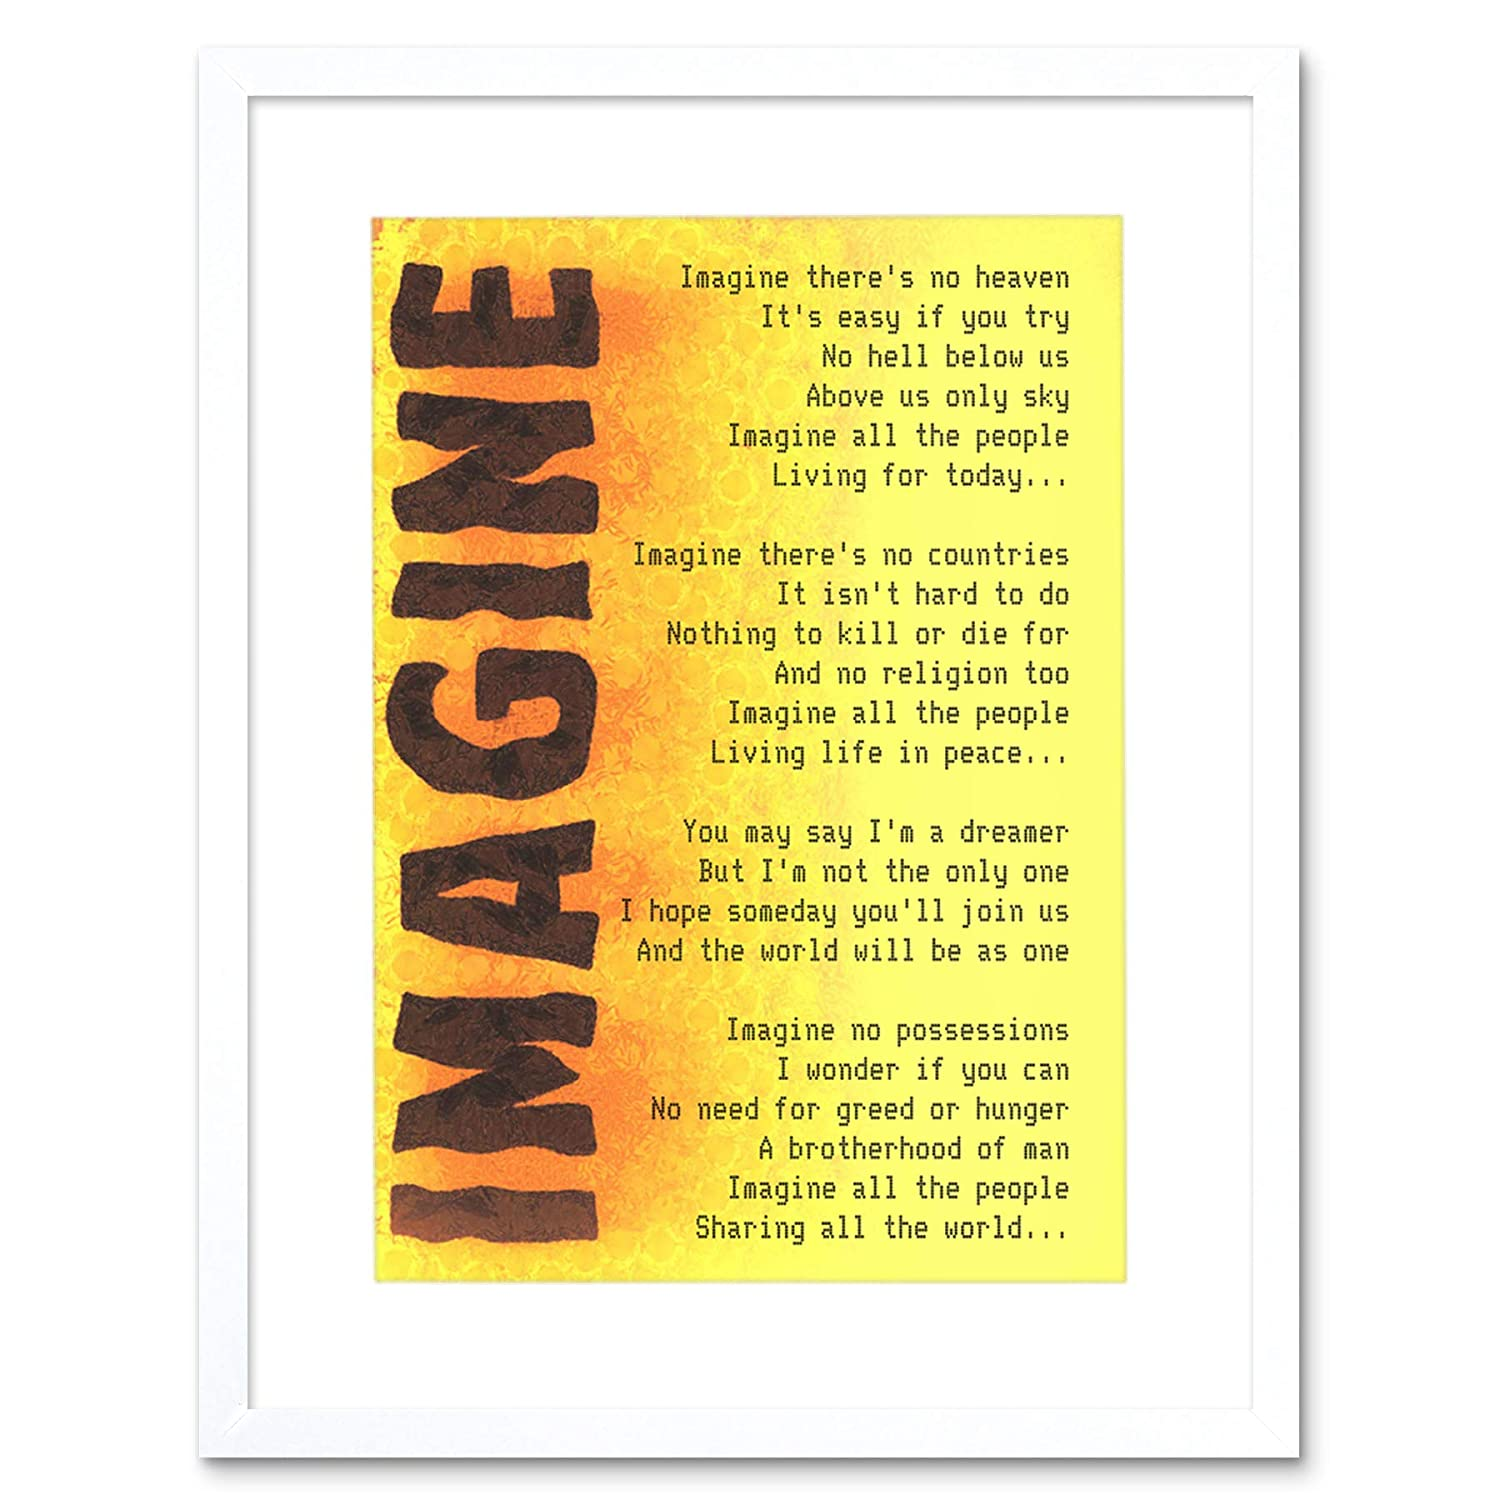 JOHN LENNON IMAGINE CANVAS PRINT PICTURE WALL ART FREE FAST DELIVERY